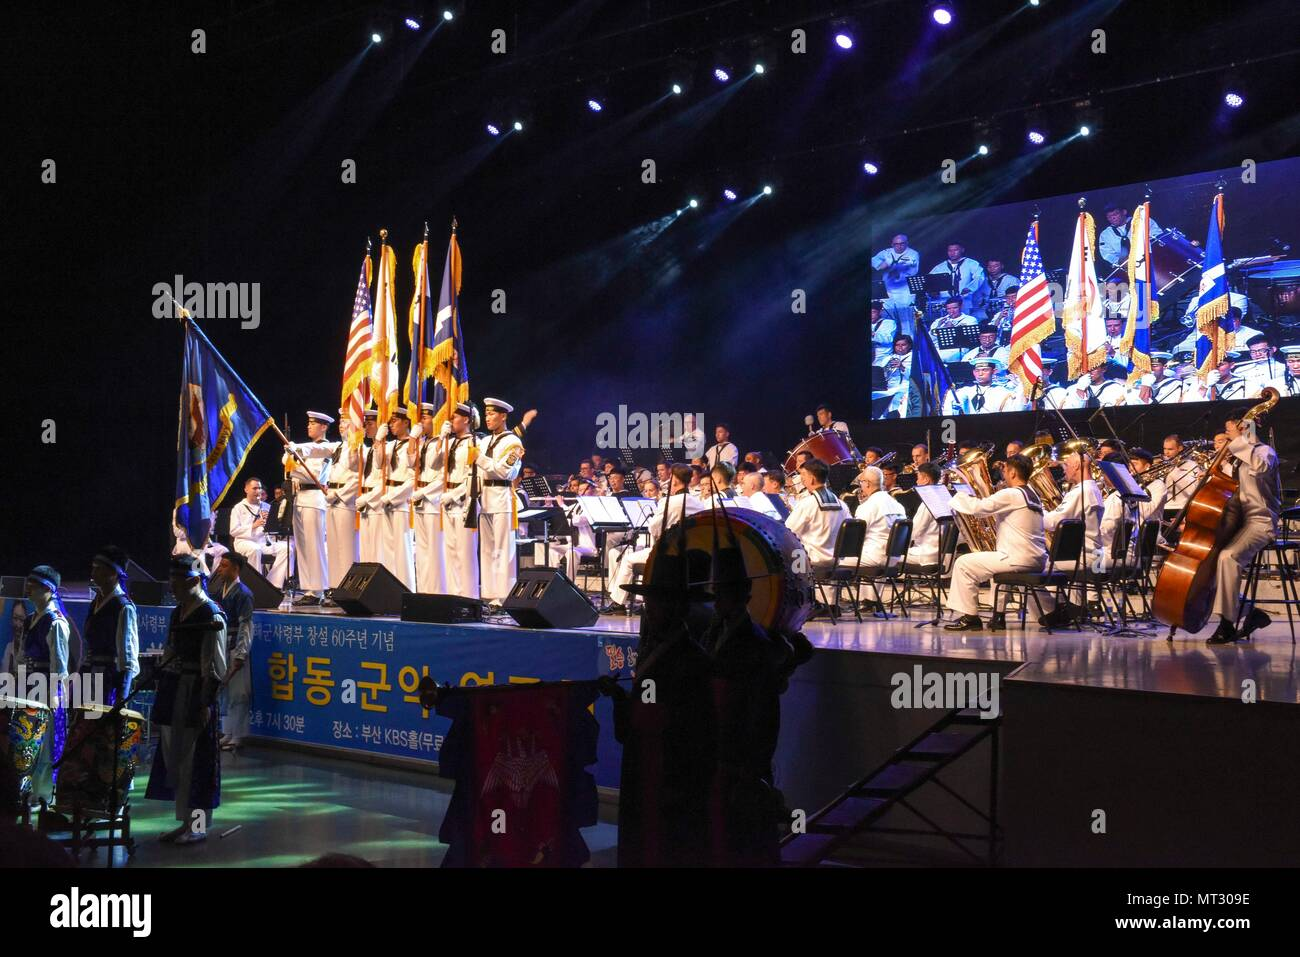 170720-N-WT427-166 BUSAN, Republic of Korea (July 20, 2017) Sailors from Combined Republic of Korea (ROK)-U.S. Navy Band performs the national anthem during a combined anniversary celebration. The performance was held to celebrate Commander, Naval Forces Korea's (CNFK) 60th anniversary and ROK Fleet's 65th anniversary. CNFK is the U.S. Navy's representative in the ROK, providing leadership and expertise in naval matters to improve institutional and operational effectiveness between the two navies and to strengthen collective security efforts in Korea and the region. (U.S. Navy photo by Mass Co Stock Photo